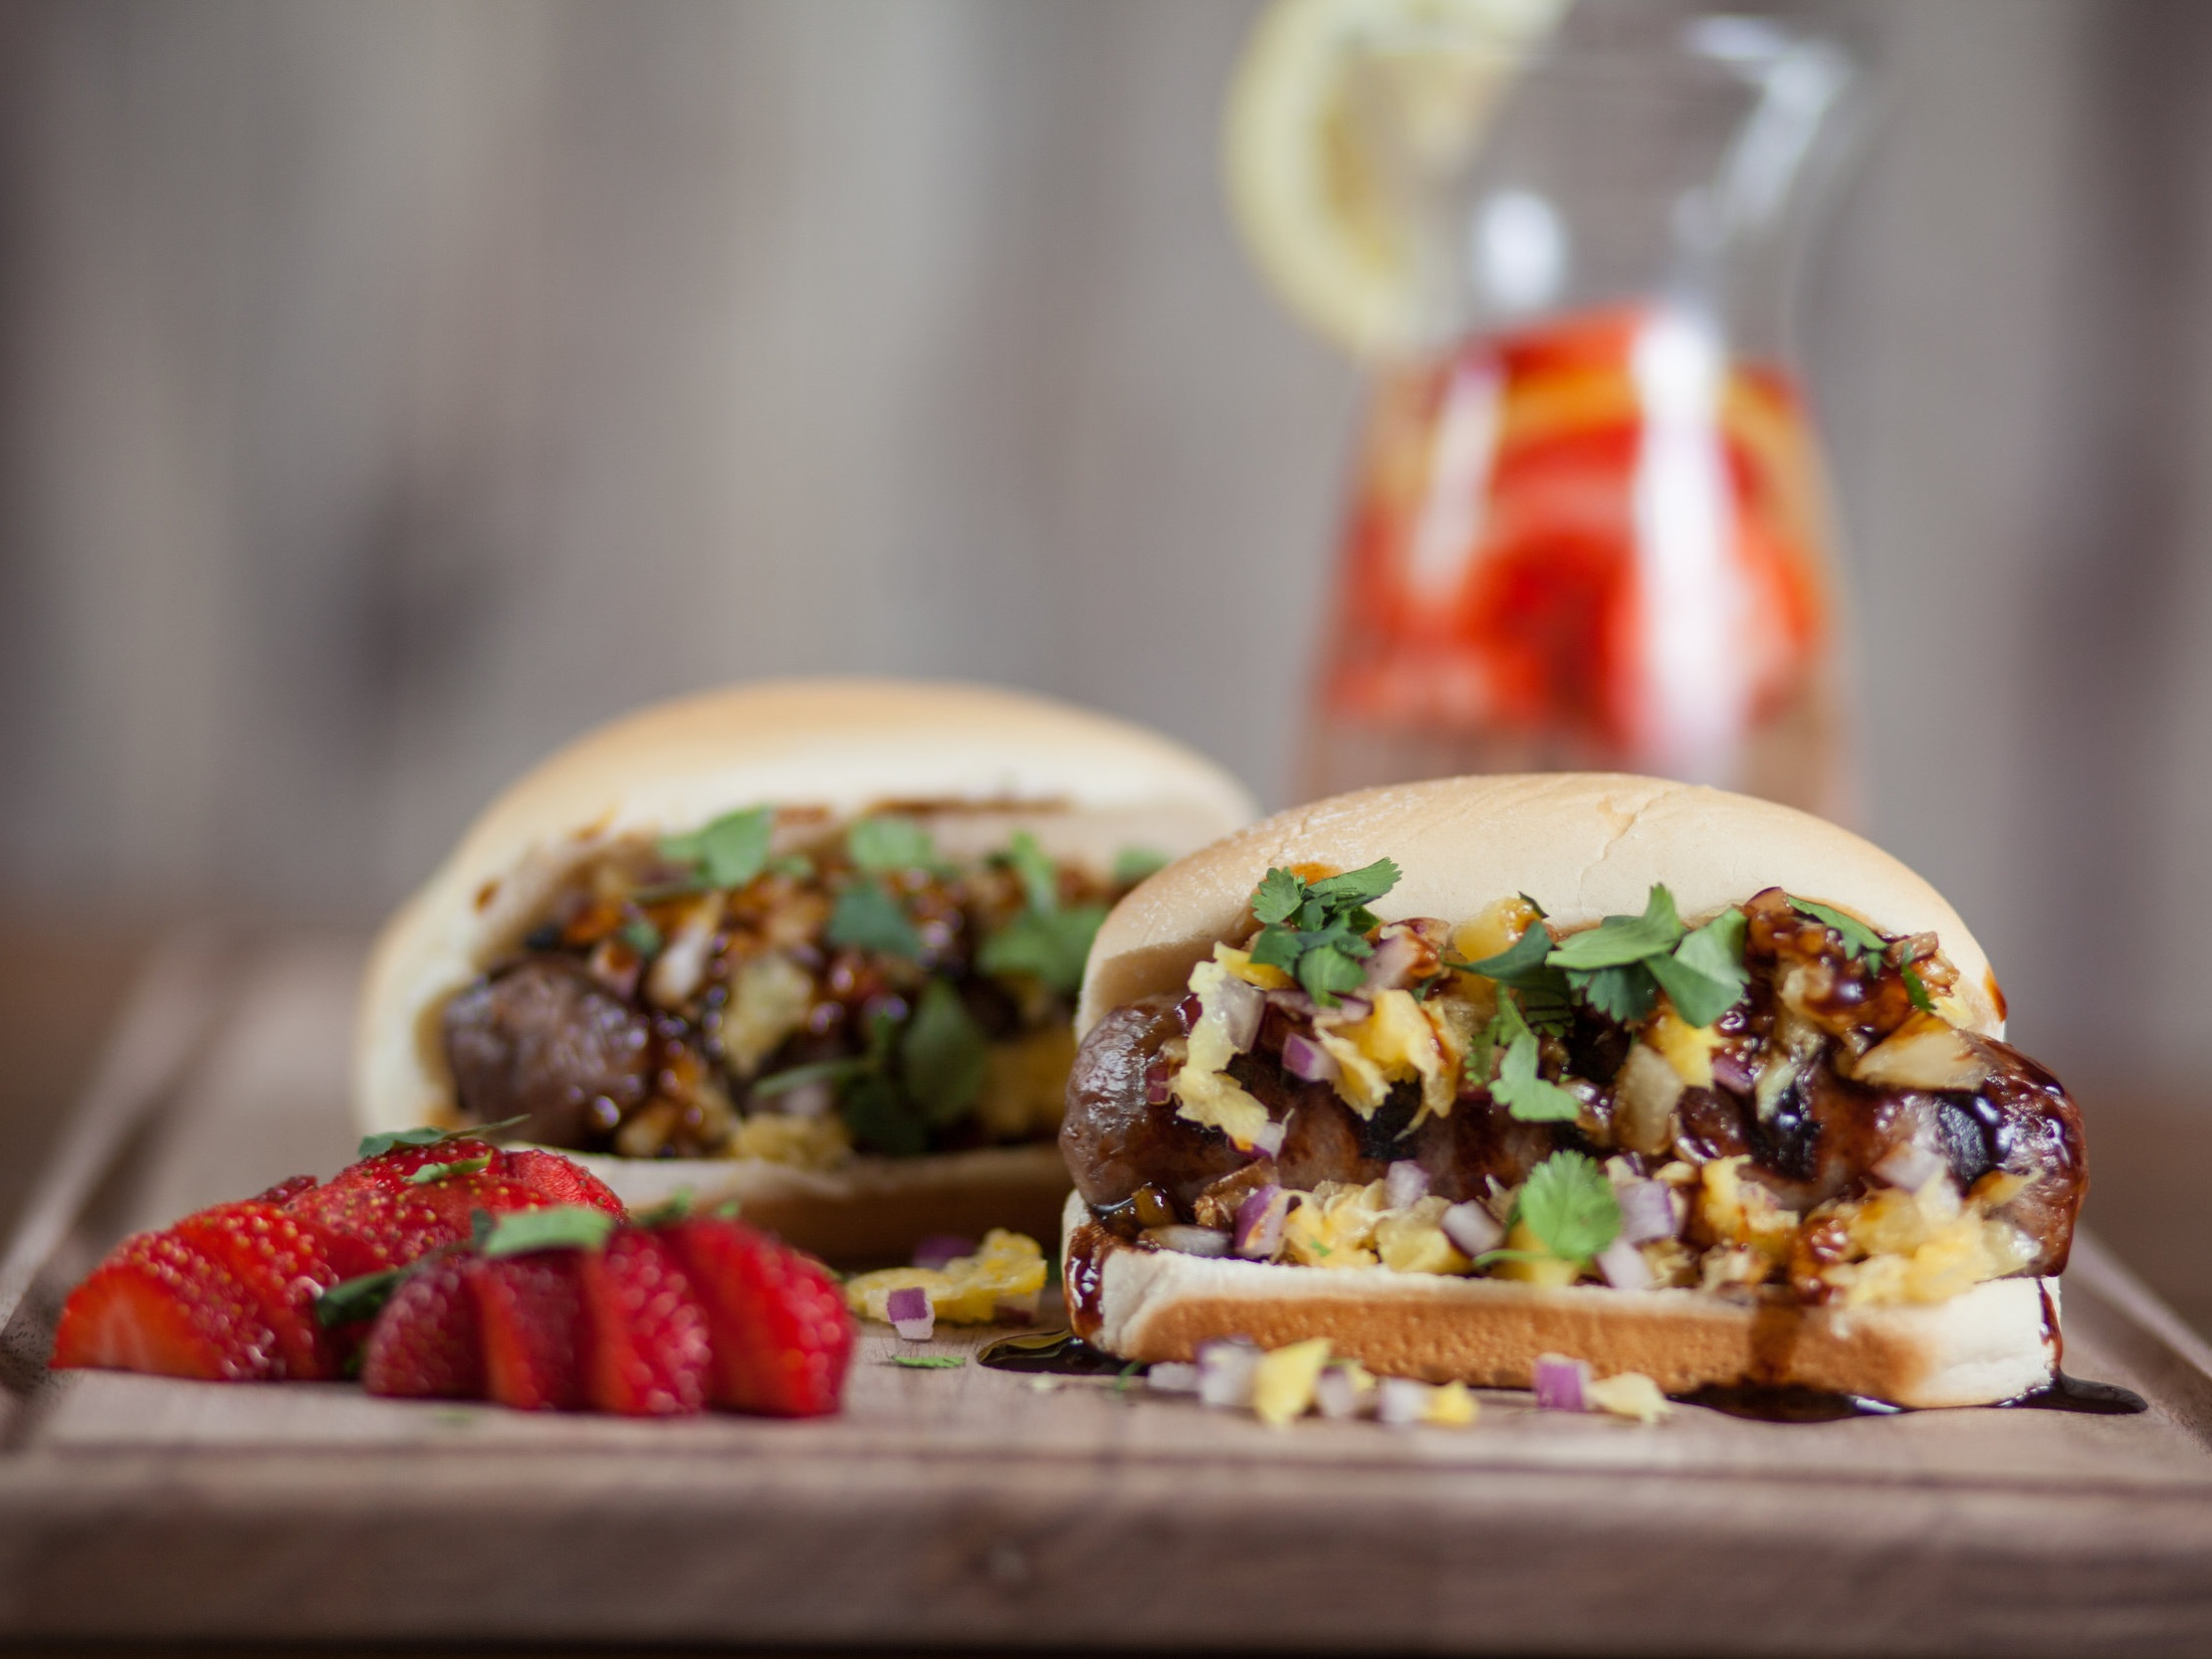 Hawaiian Brats - You need something a little tropical to end your summer on a high note! Bratwursts with crushed pineapple and teriyaki sauce on Deli Mini Sub Buns are the perfect way to say 'Aloha' to summer. They're both easy to assemble and fun to eat. So hopefully this Labor Day you're able to sit back and relax like you were in Hawaii.